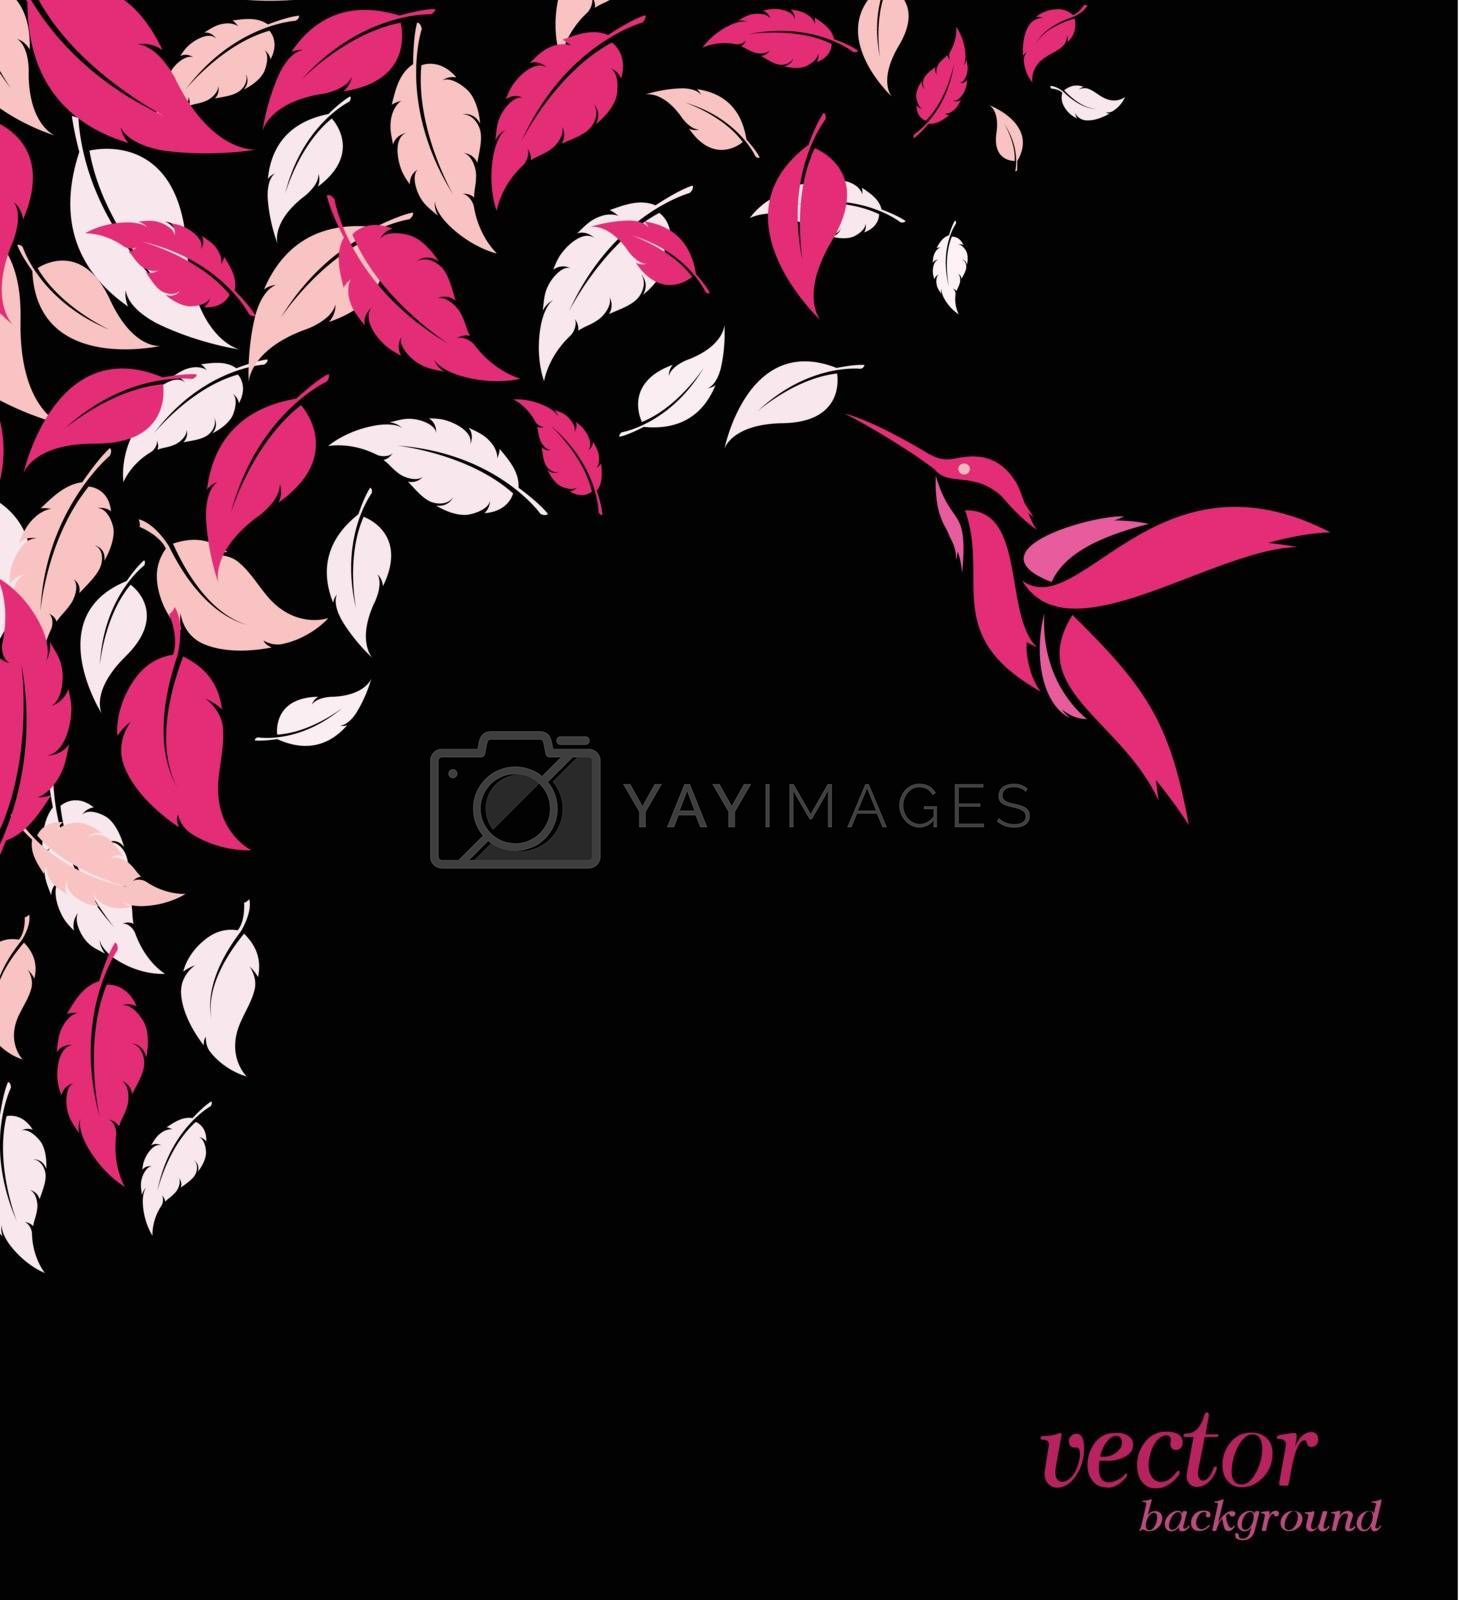 Royalty free image of Abstract pink leaf and hummingbirds background  by yod67